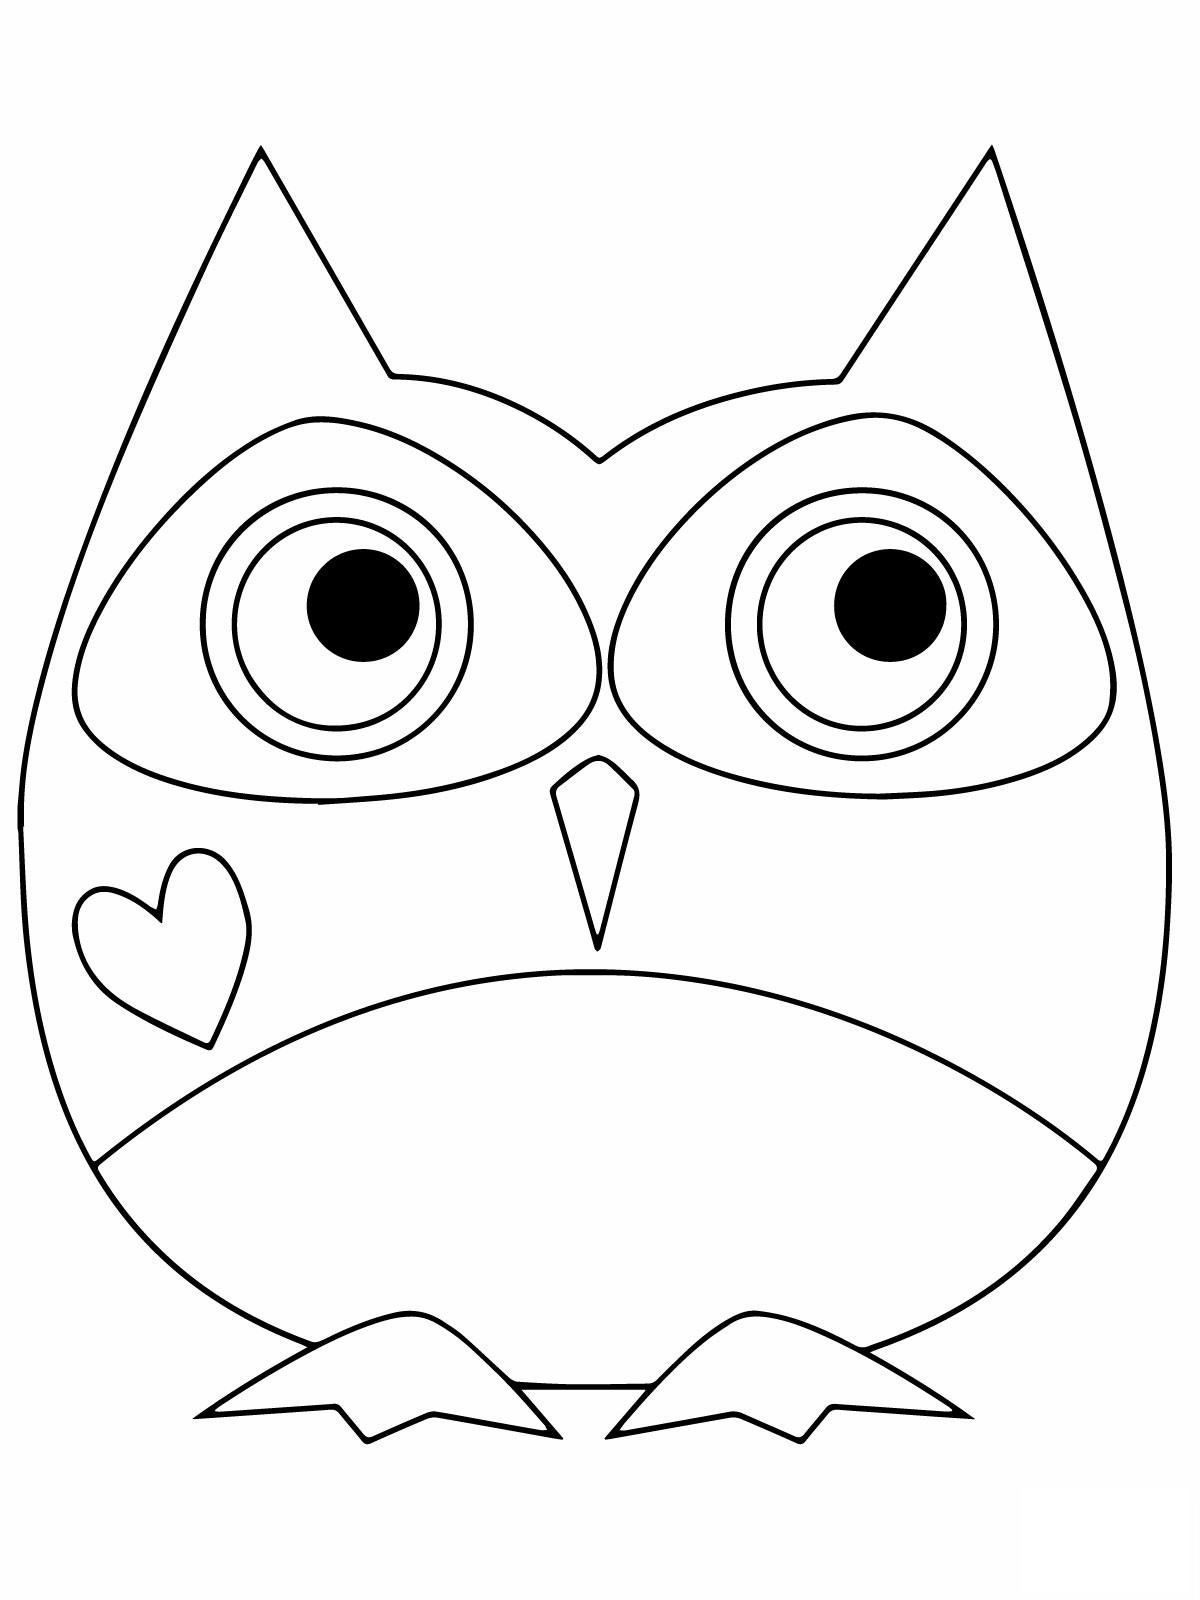 Super coloring - free printable coloring pages, dot to dots ...